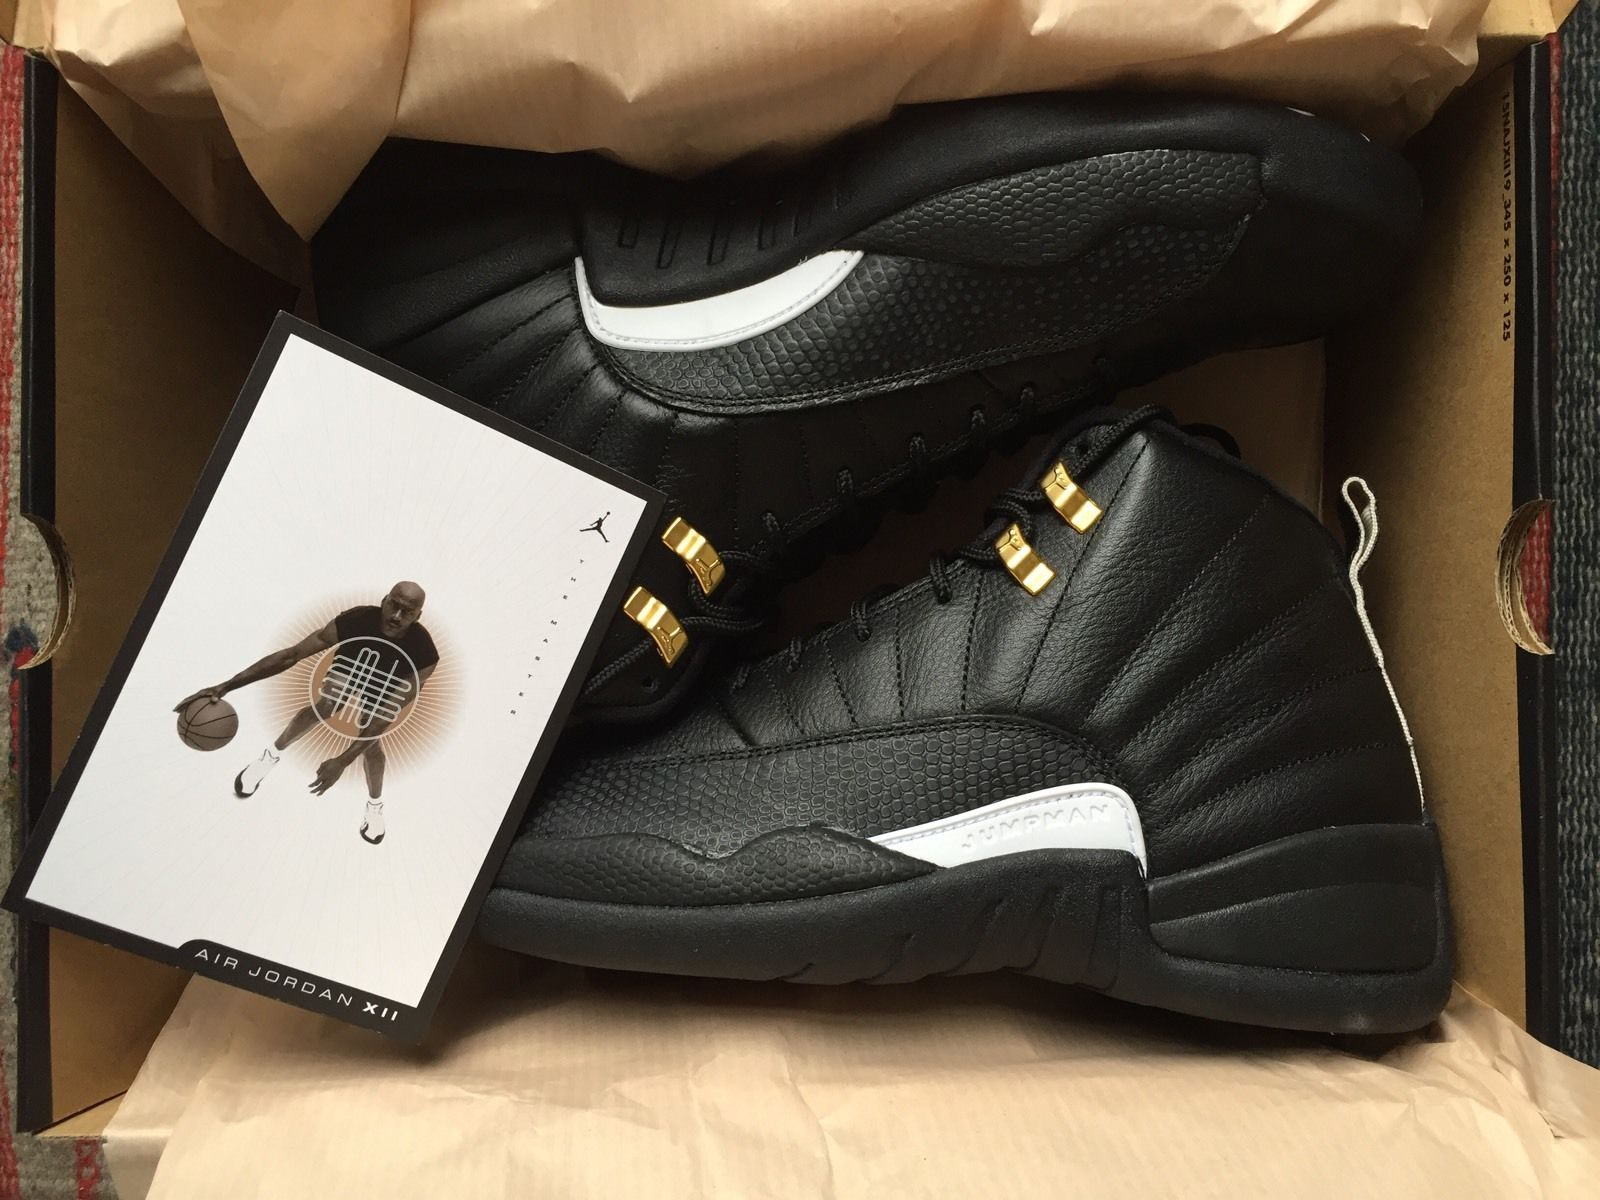 fe6e9a258b07 Nike Air Jordan Retro 12 XII The Master 2016. New w  Receipt. Size 9.5 US   receipt  size  master  retro  jordan  nike